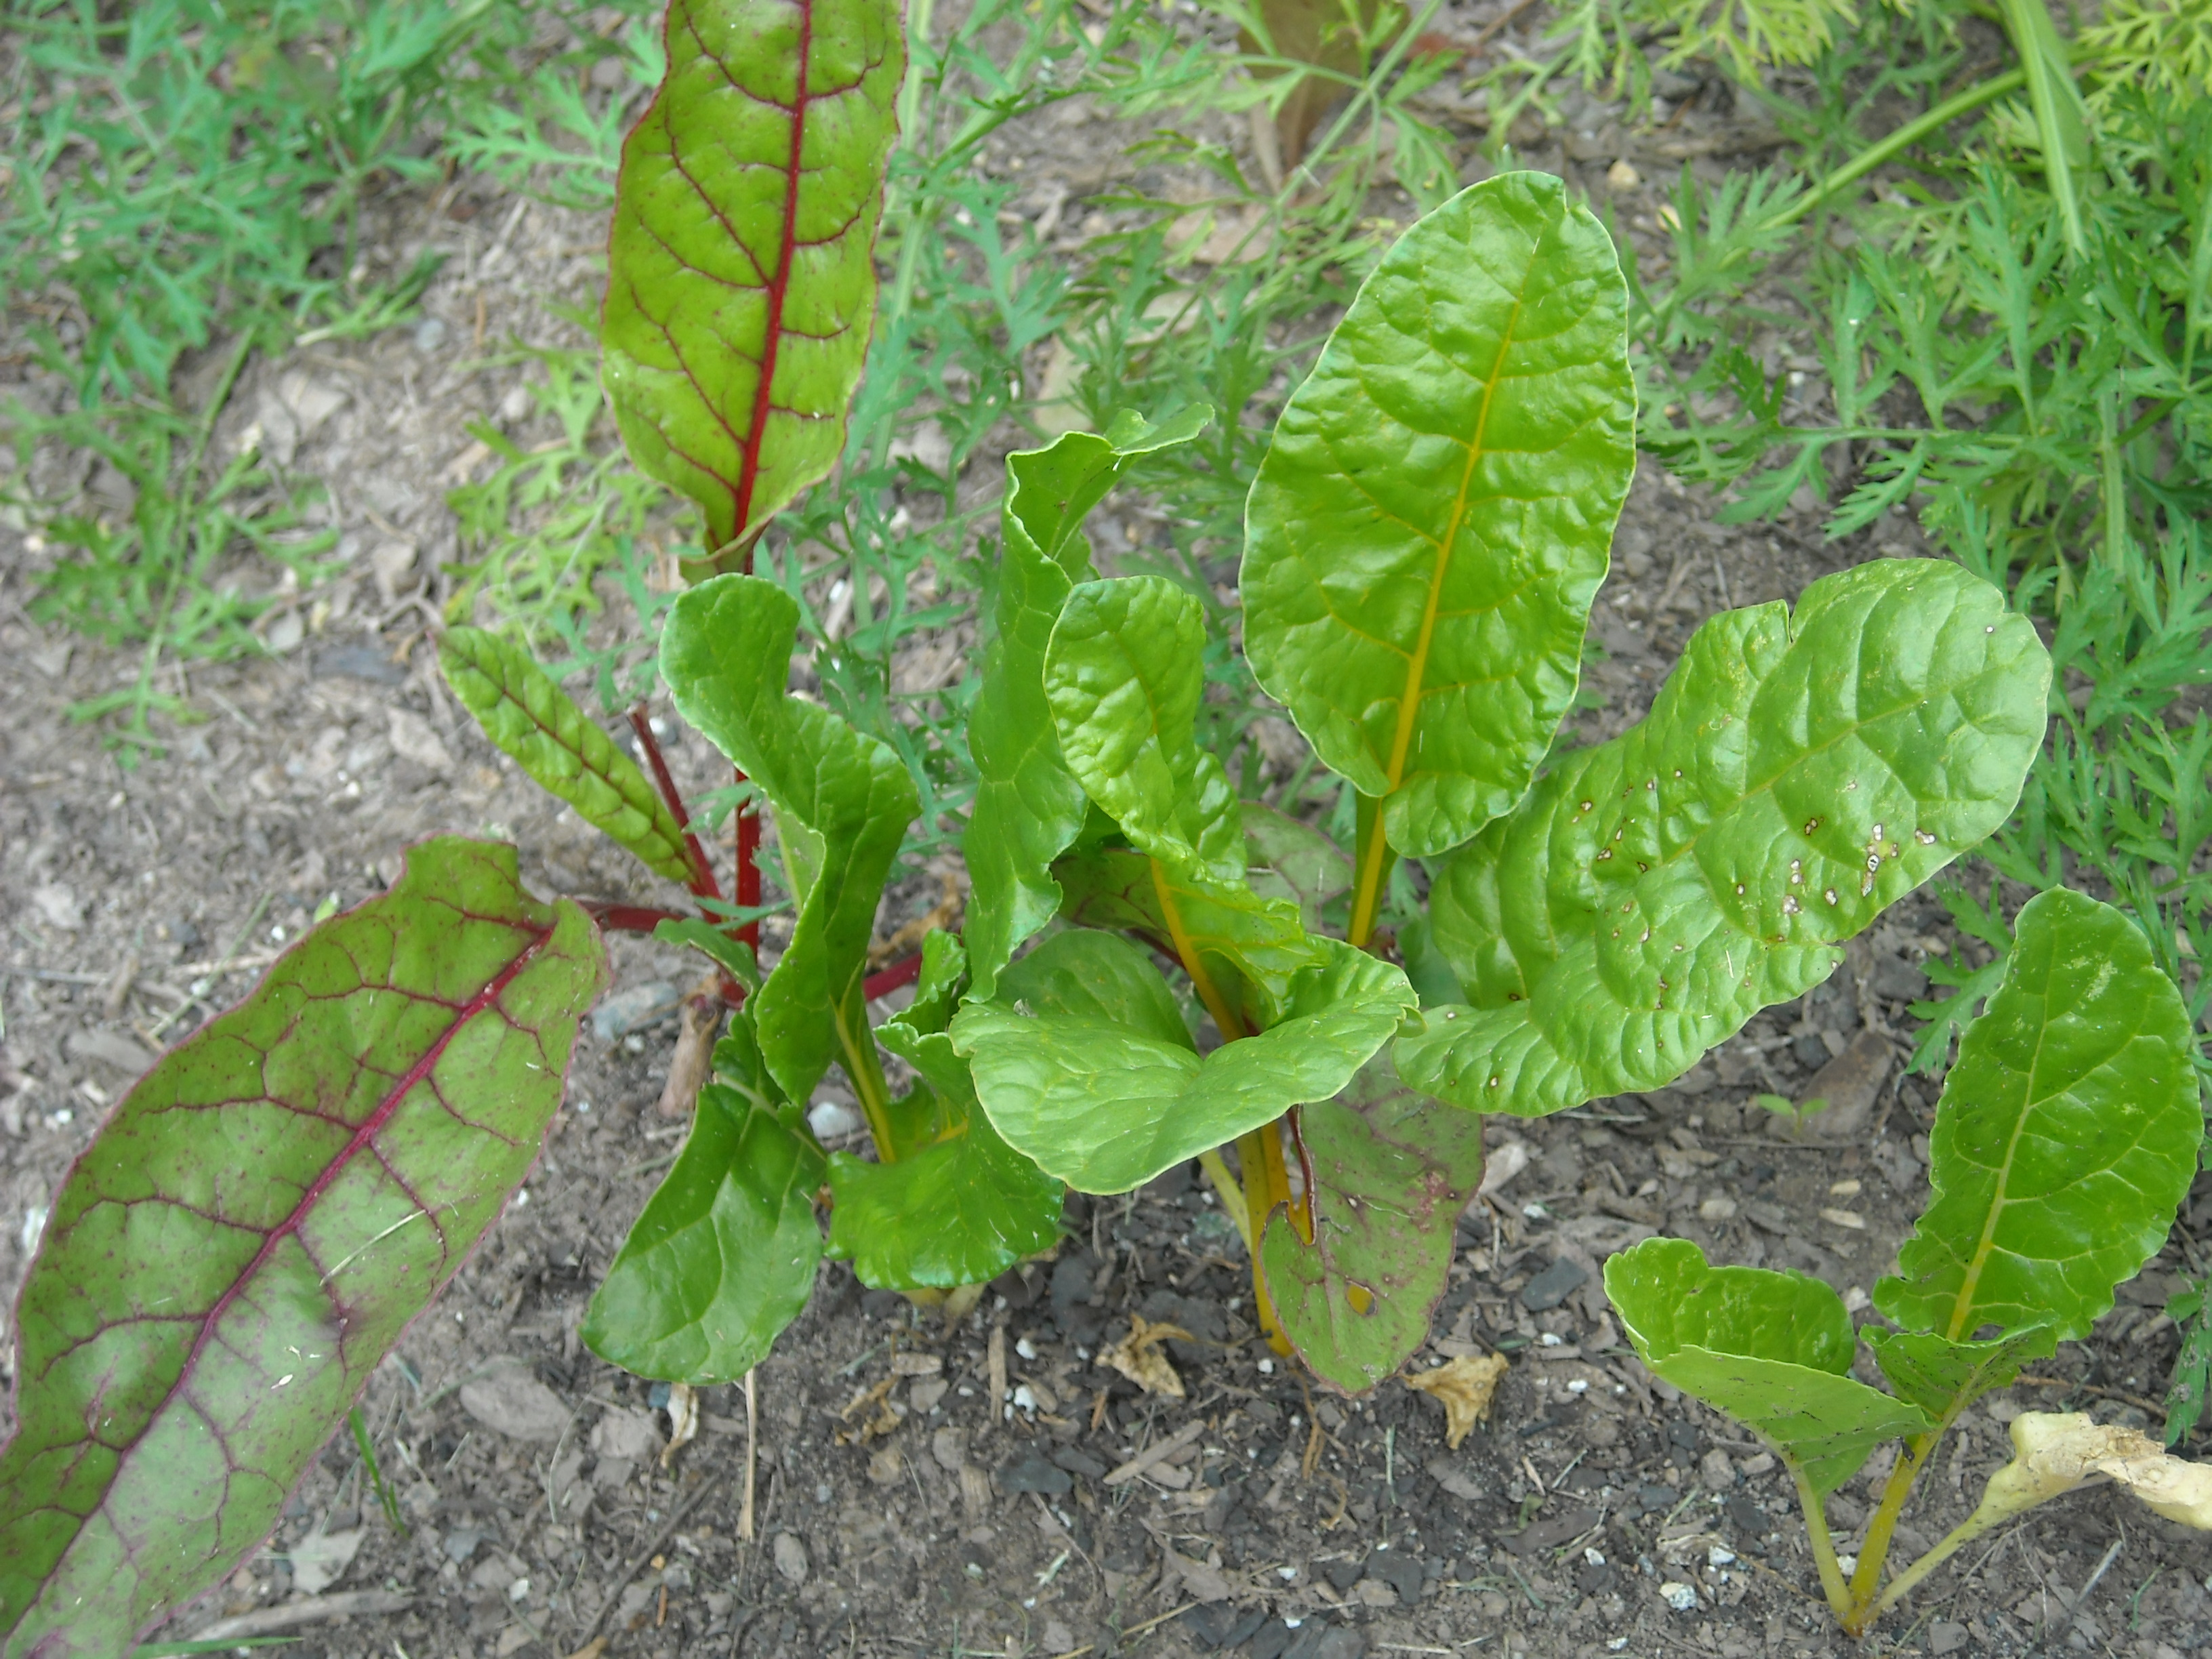 Swiss chard plants in the garden.